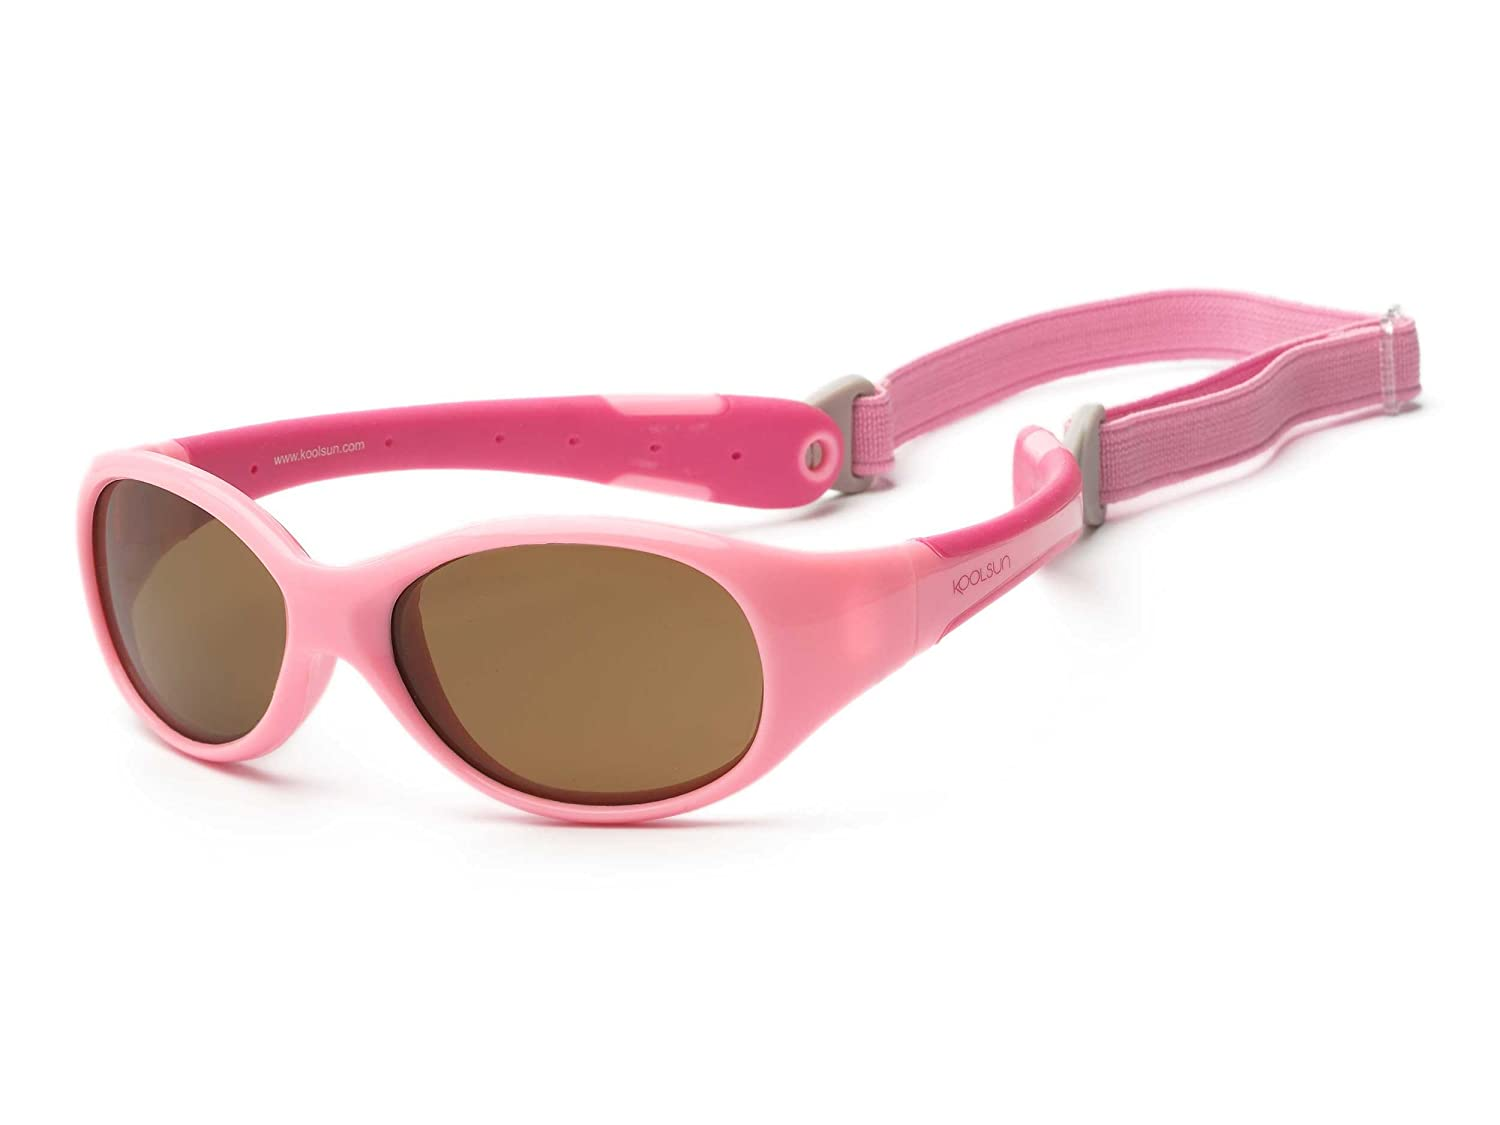 dee9bfbbc3 Gafas de sol para koolsun Baby Flex niña 0 - 3 AñOS | Rosa & Hot | 100%  protección UV | con desmontable Diadema | Optical Clas 1, cat. 3:  Amazon.es: Bebé